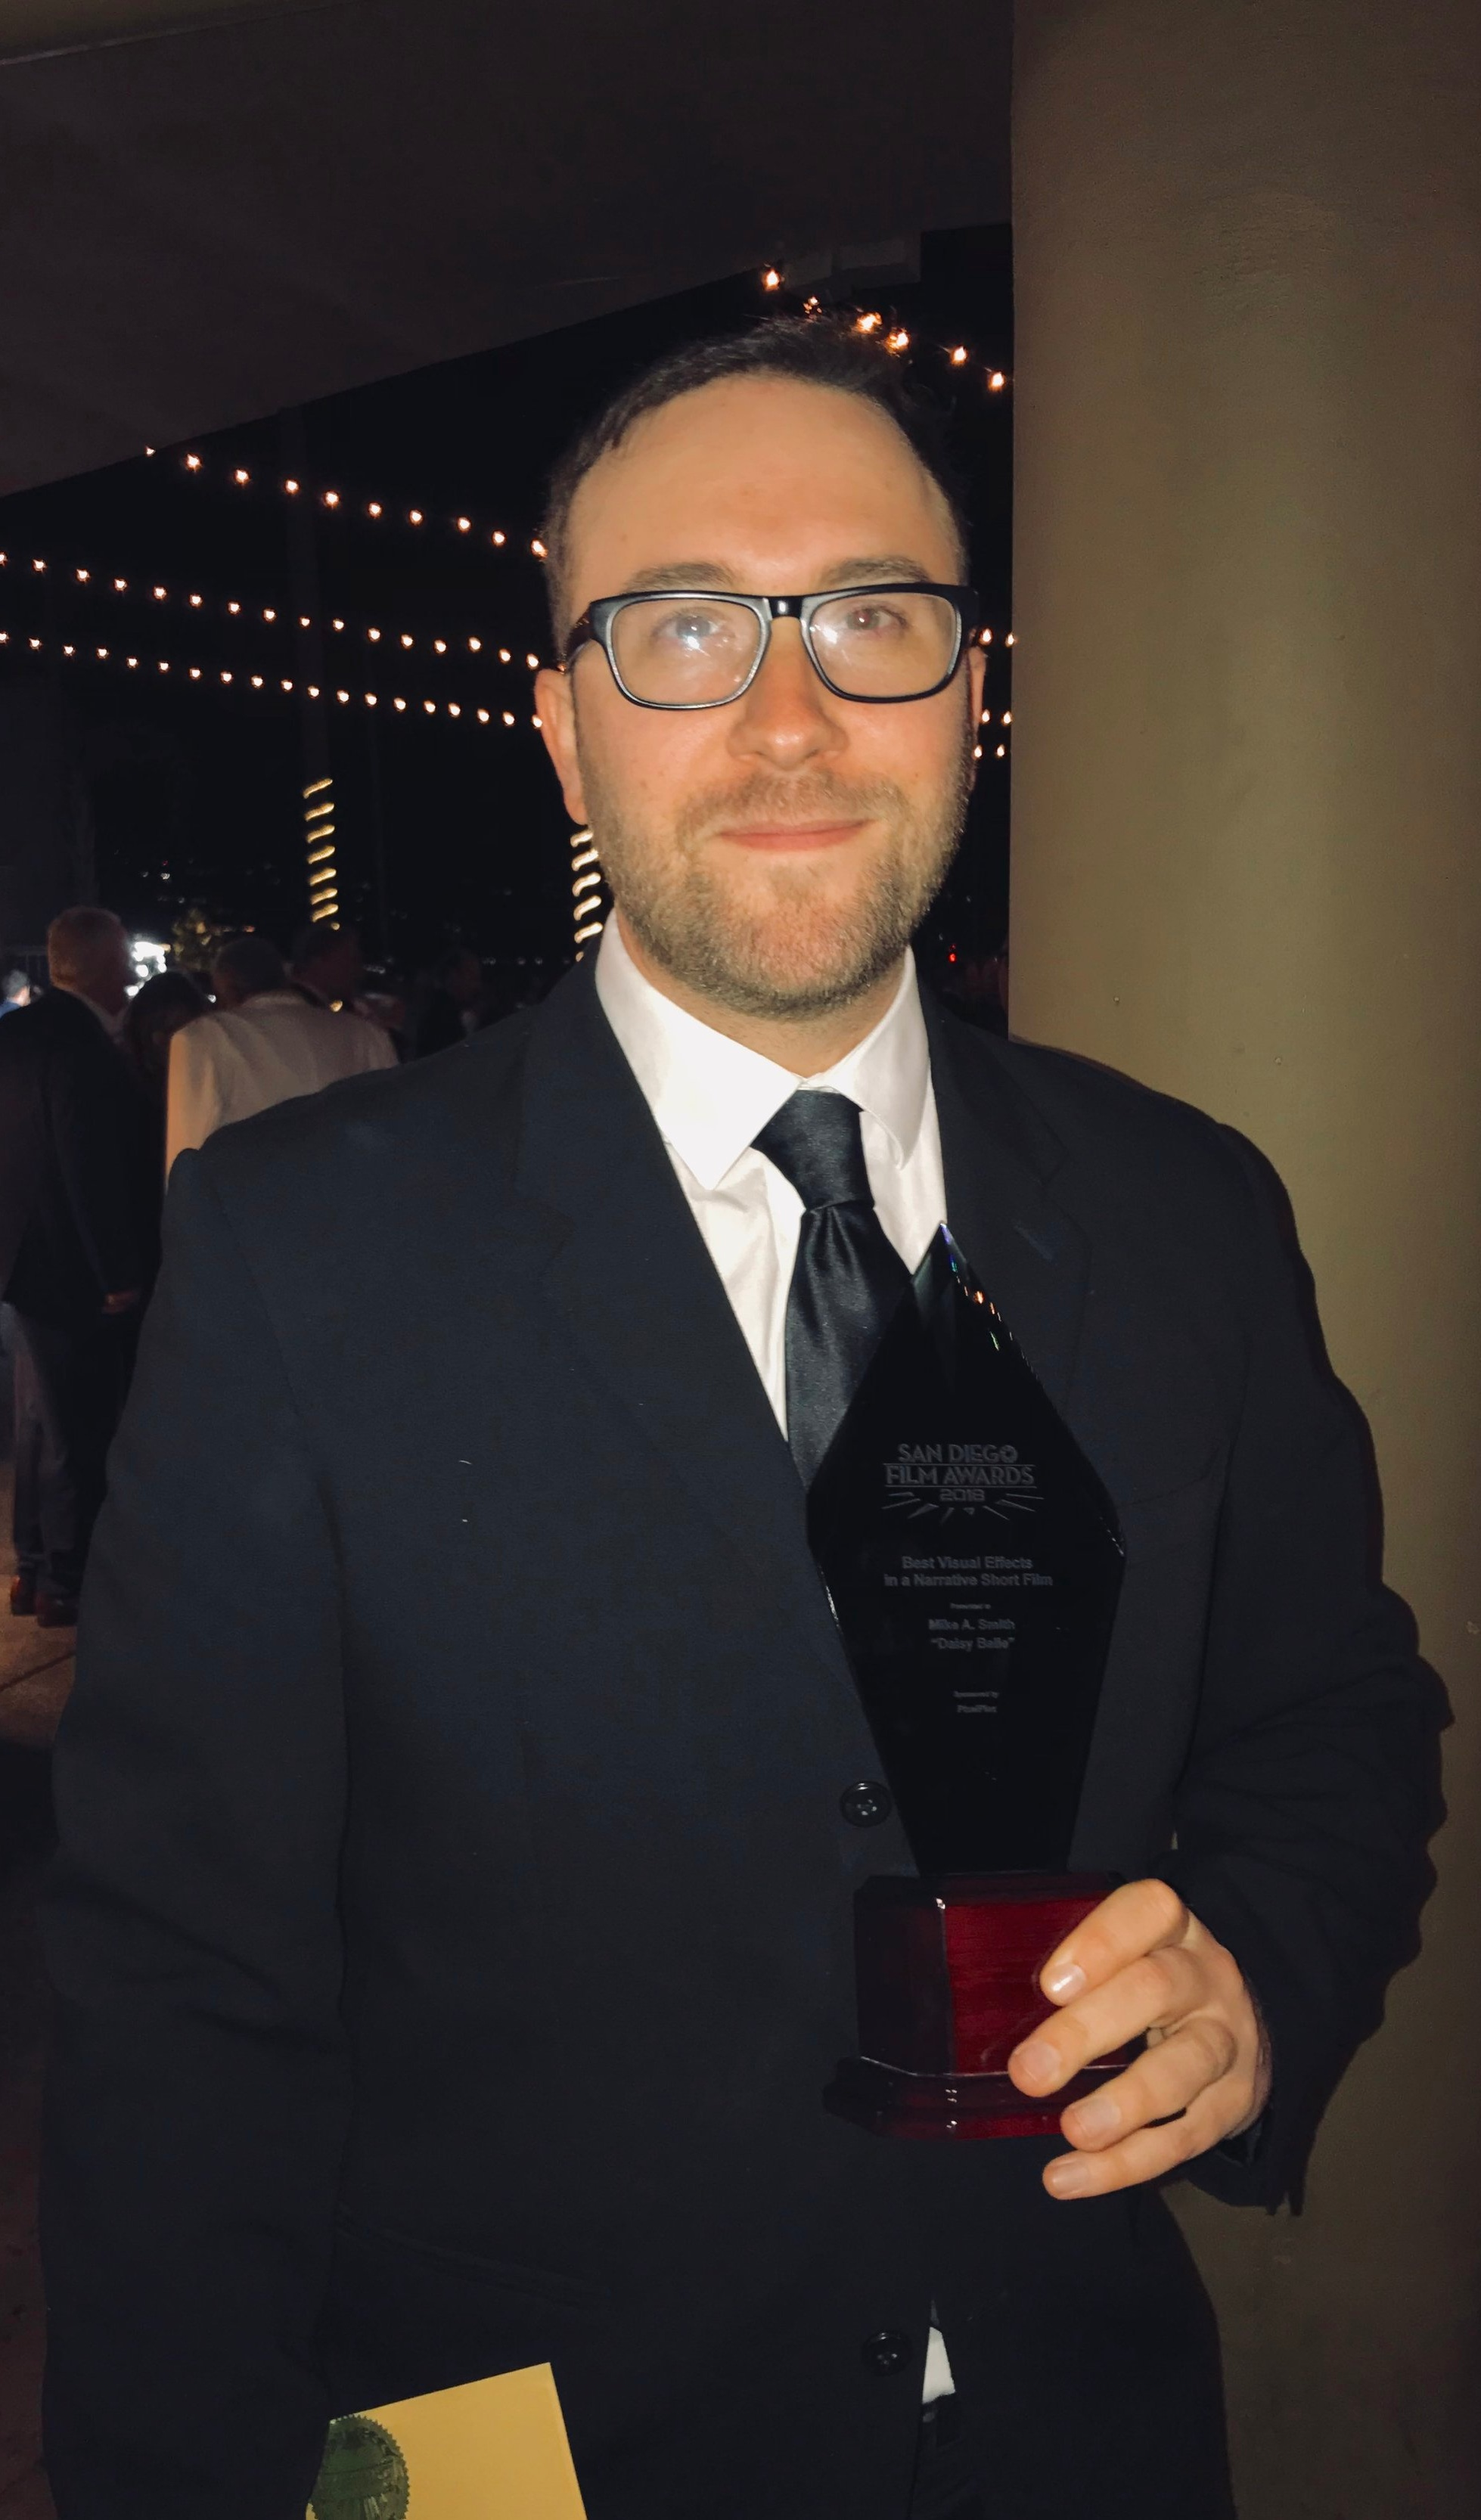 Mike Smith - 2D/3D AnimatorMike Smith, an award winning animator, received his degree from Platt College San Diego and has worked in the VFX industry for 10 years as a 3D modeler and animator. He specializes in character animation, product visualization, and motion graphics.